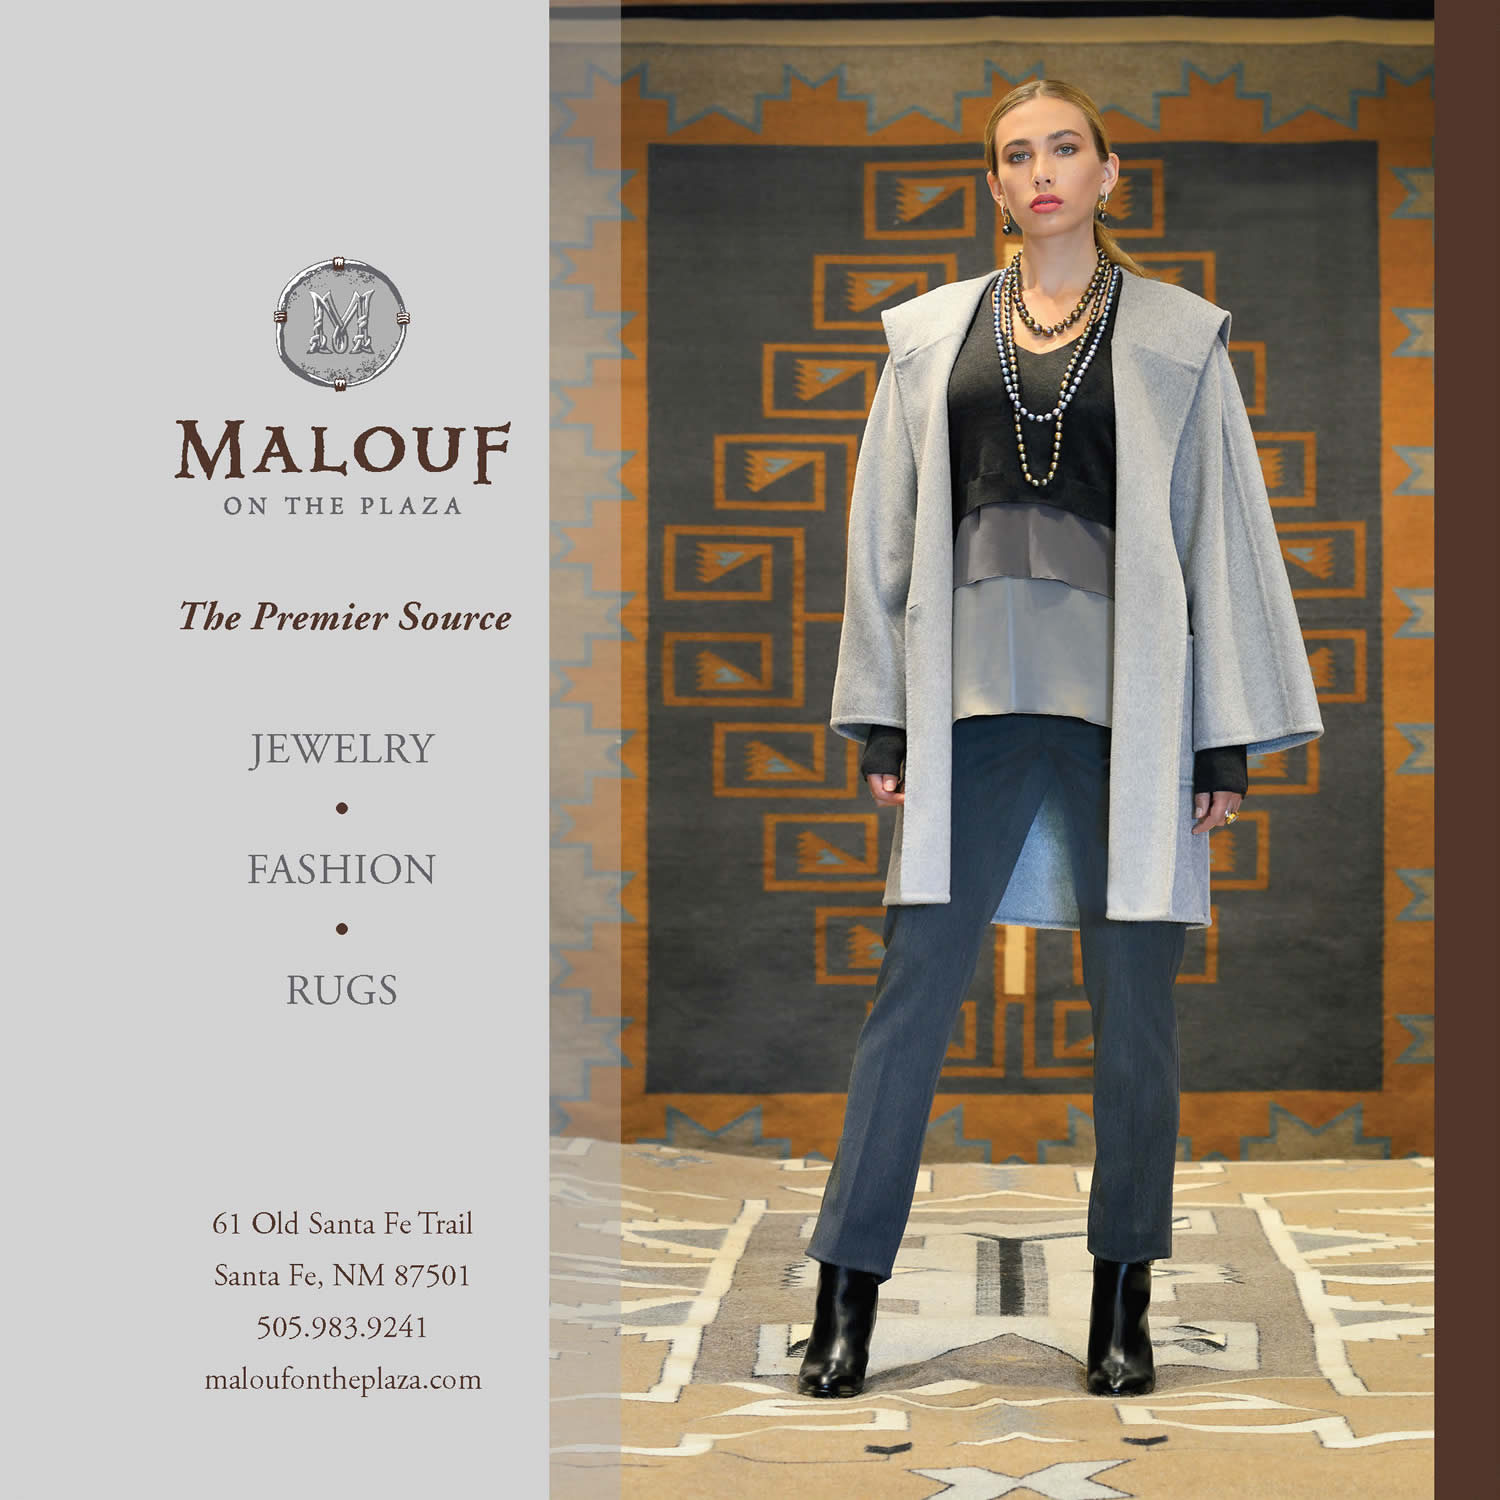 MALOUF_ON_THE_PLAZA_1.jpg